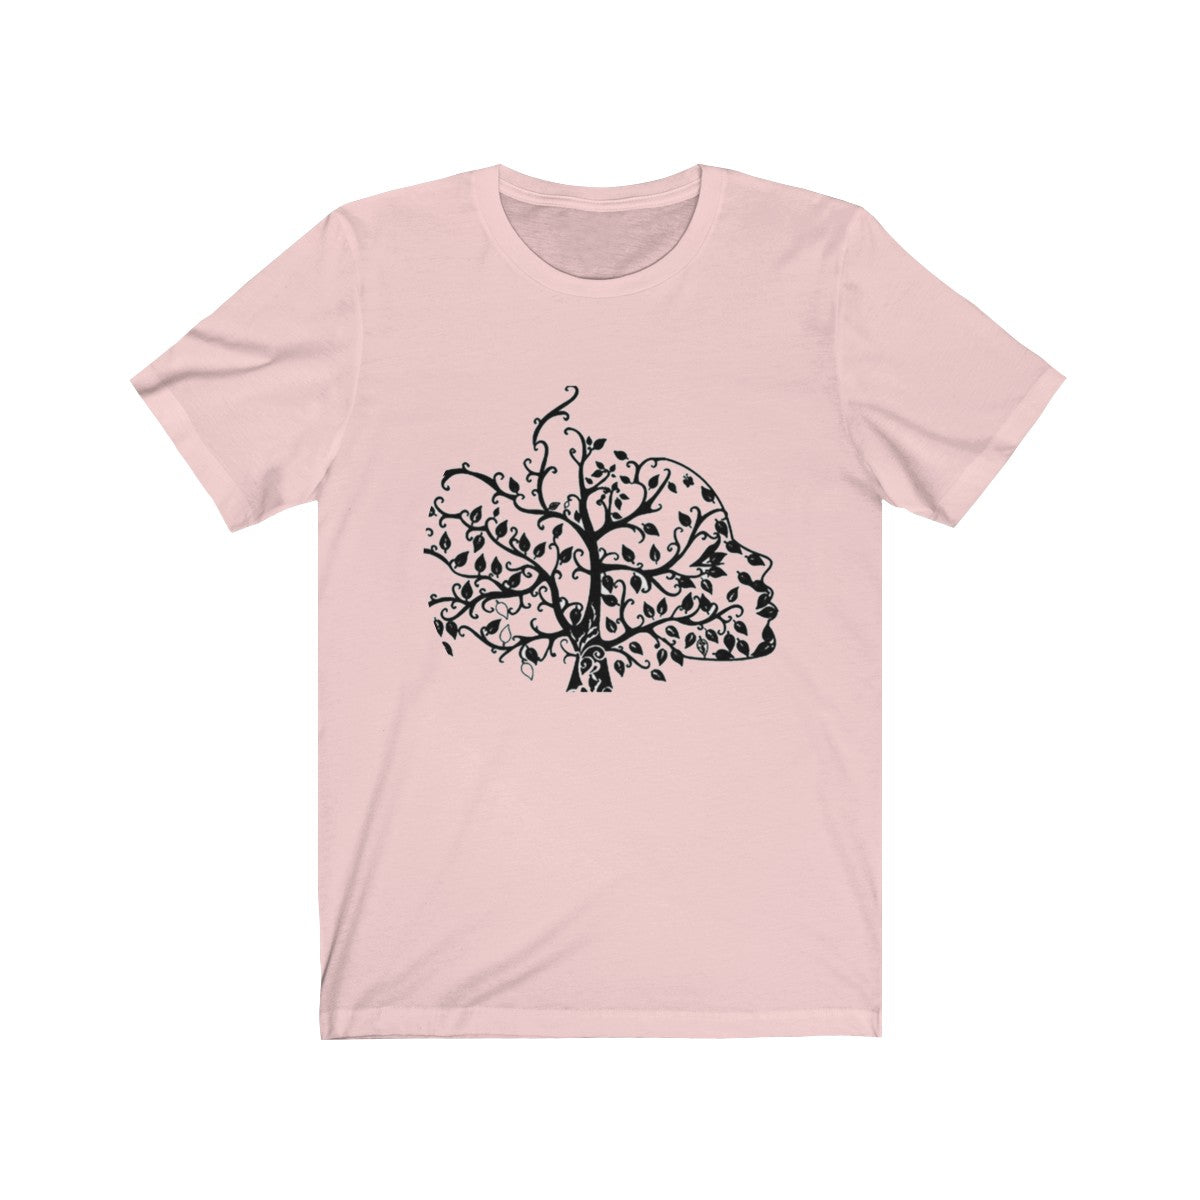 Female Silhouette Family Reunion Unisex Tee